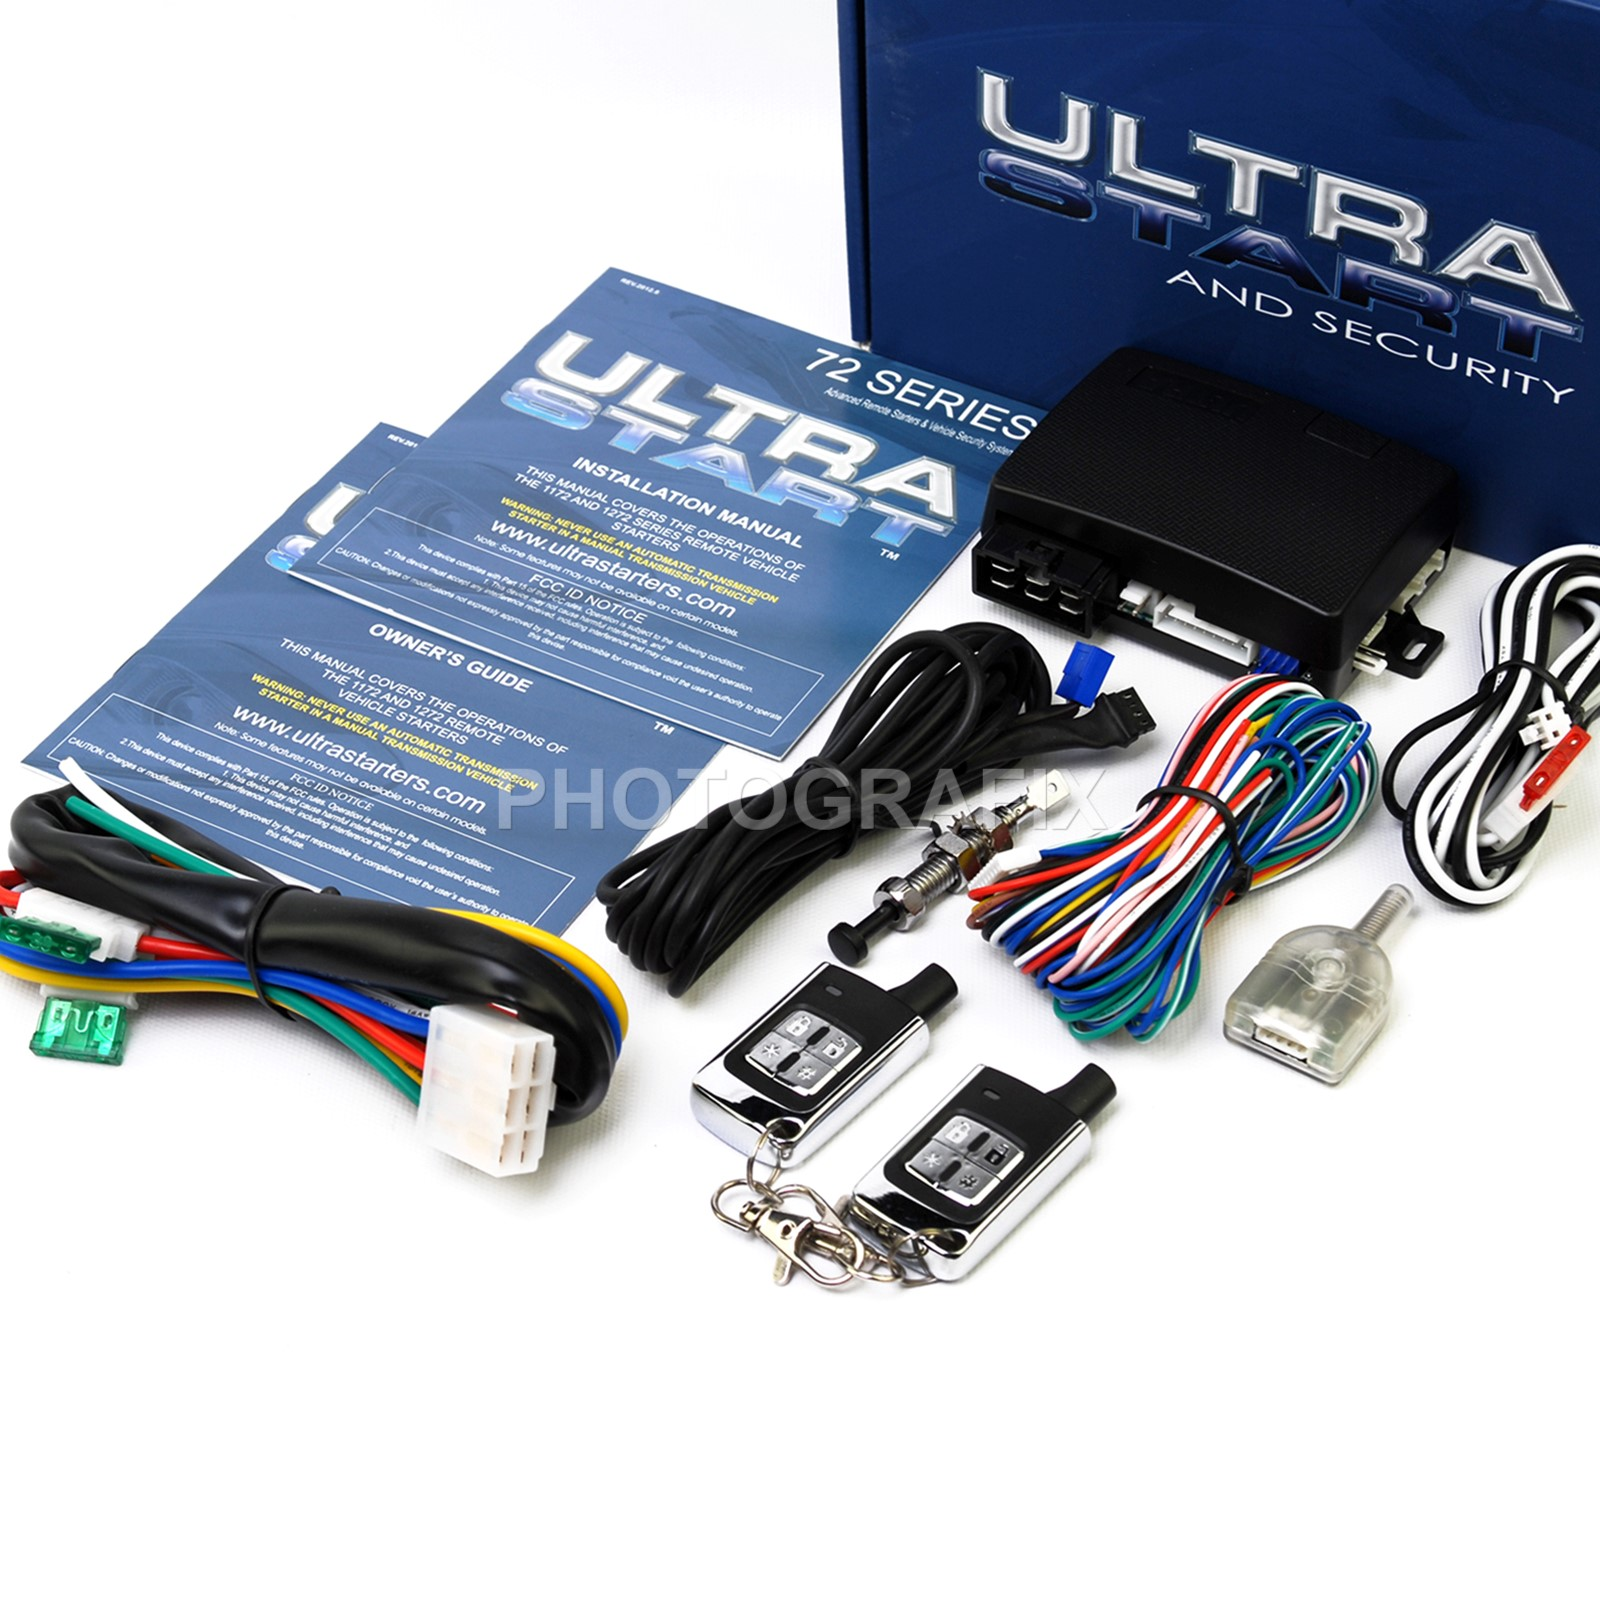 vehicle remote starter wiring diagram ultra start 1272 xr pro keyless auto remote car start starter  ultra start 1272 xr pro keyless auto